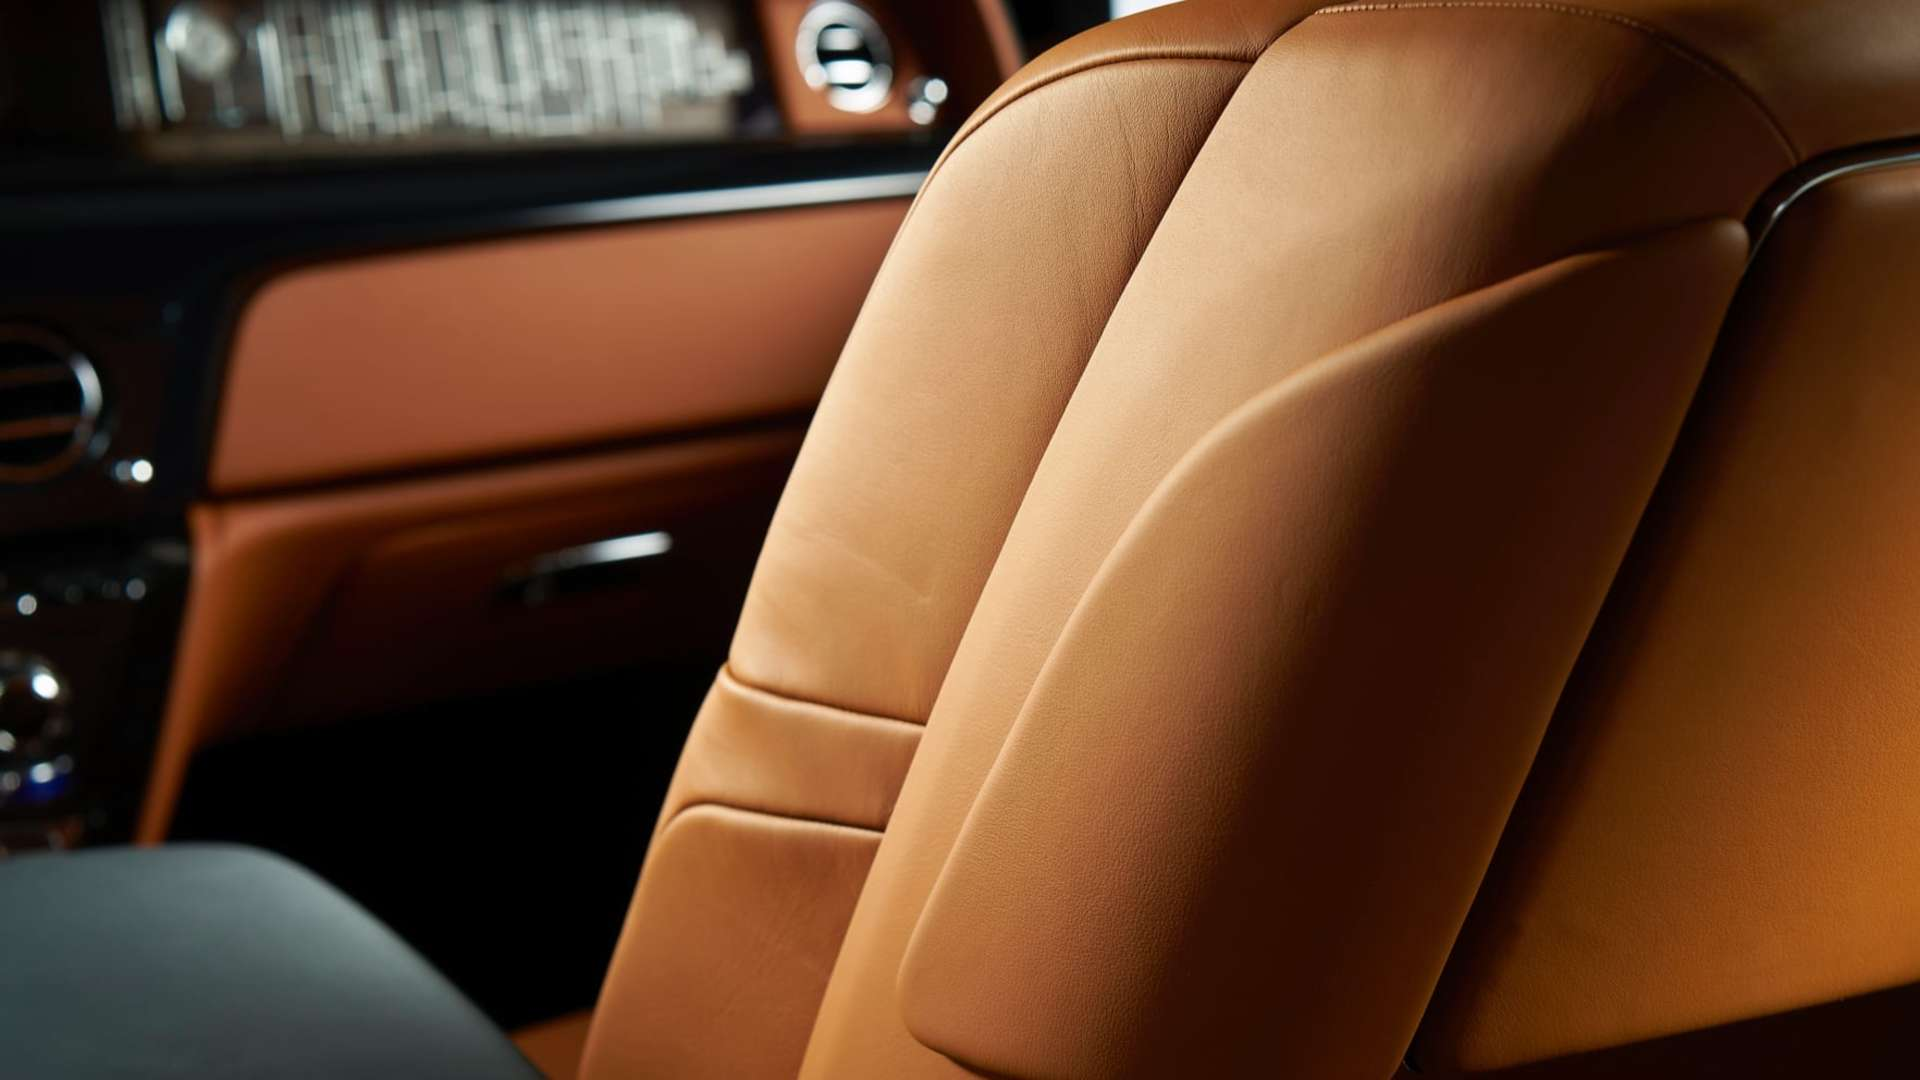 The leather interior of a Rolls-Royce Phantom motor car